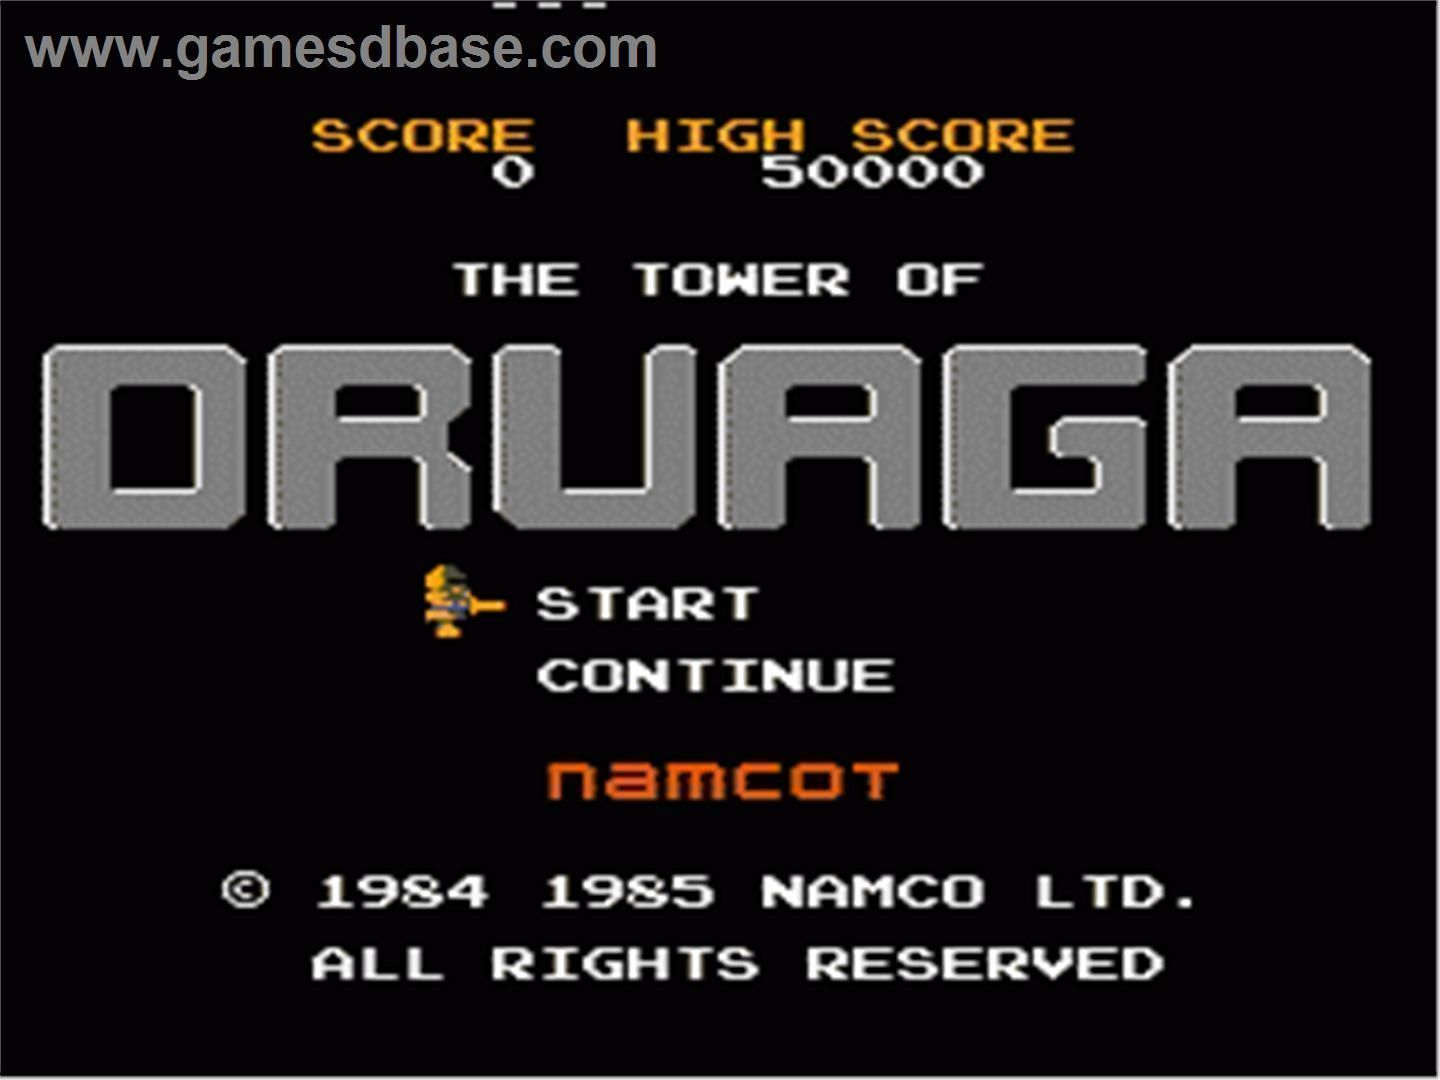 Tower Of Zalaga (Tower Of Druaga Hack)